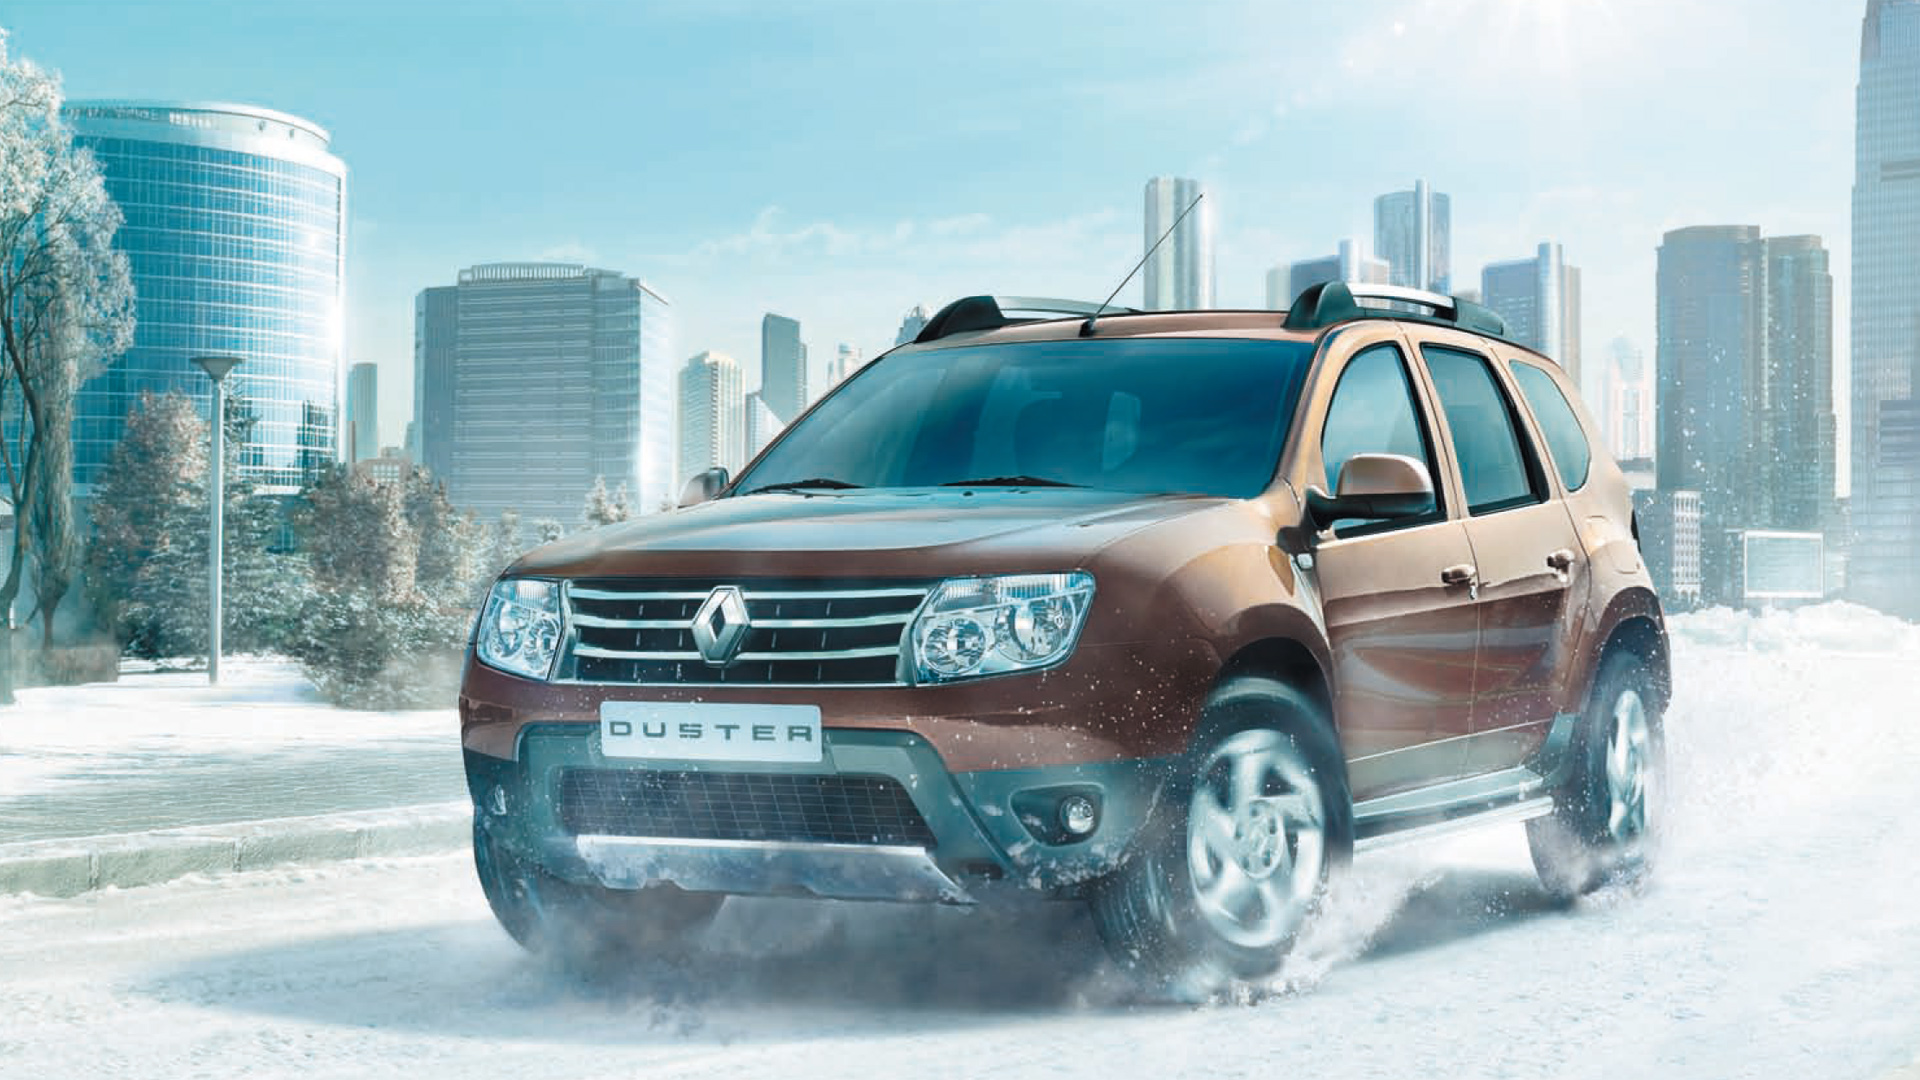 renault wallpaper (Renault Duster)